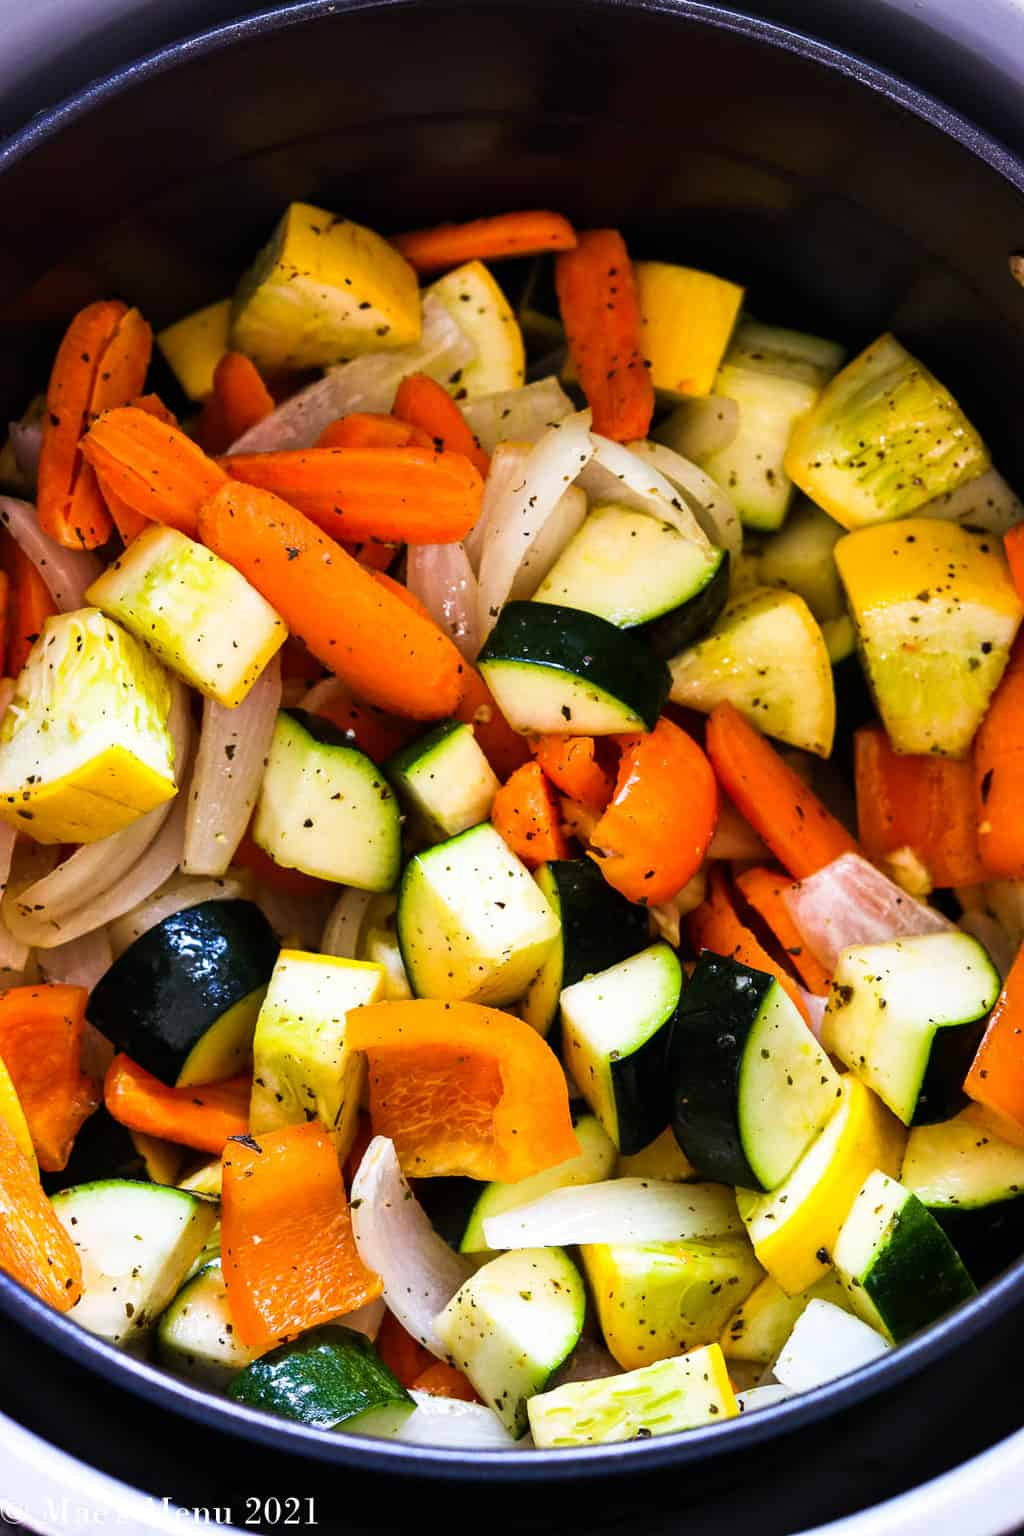 An overhead shot of an air fryer basket with veggies coated in oil and spices